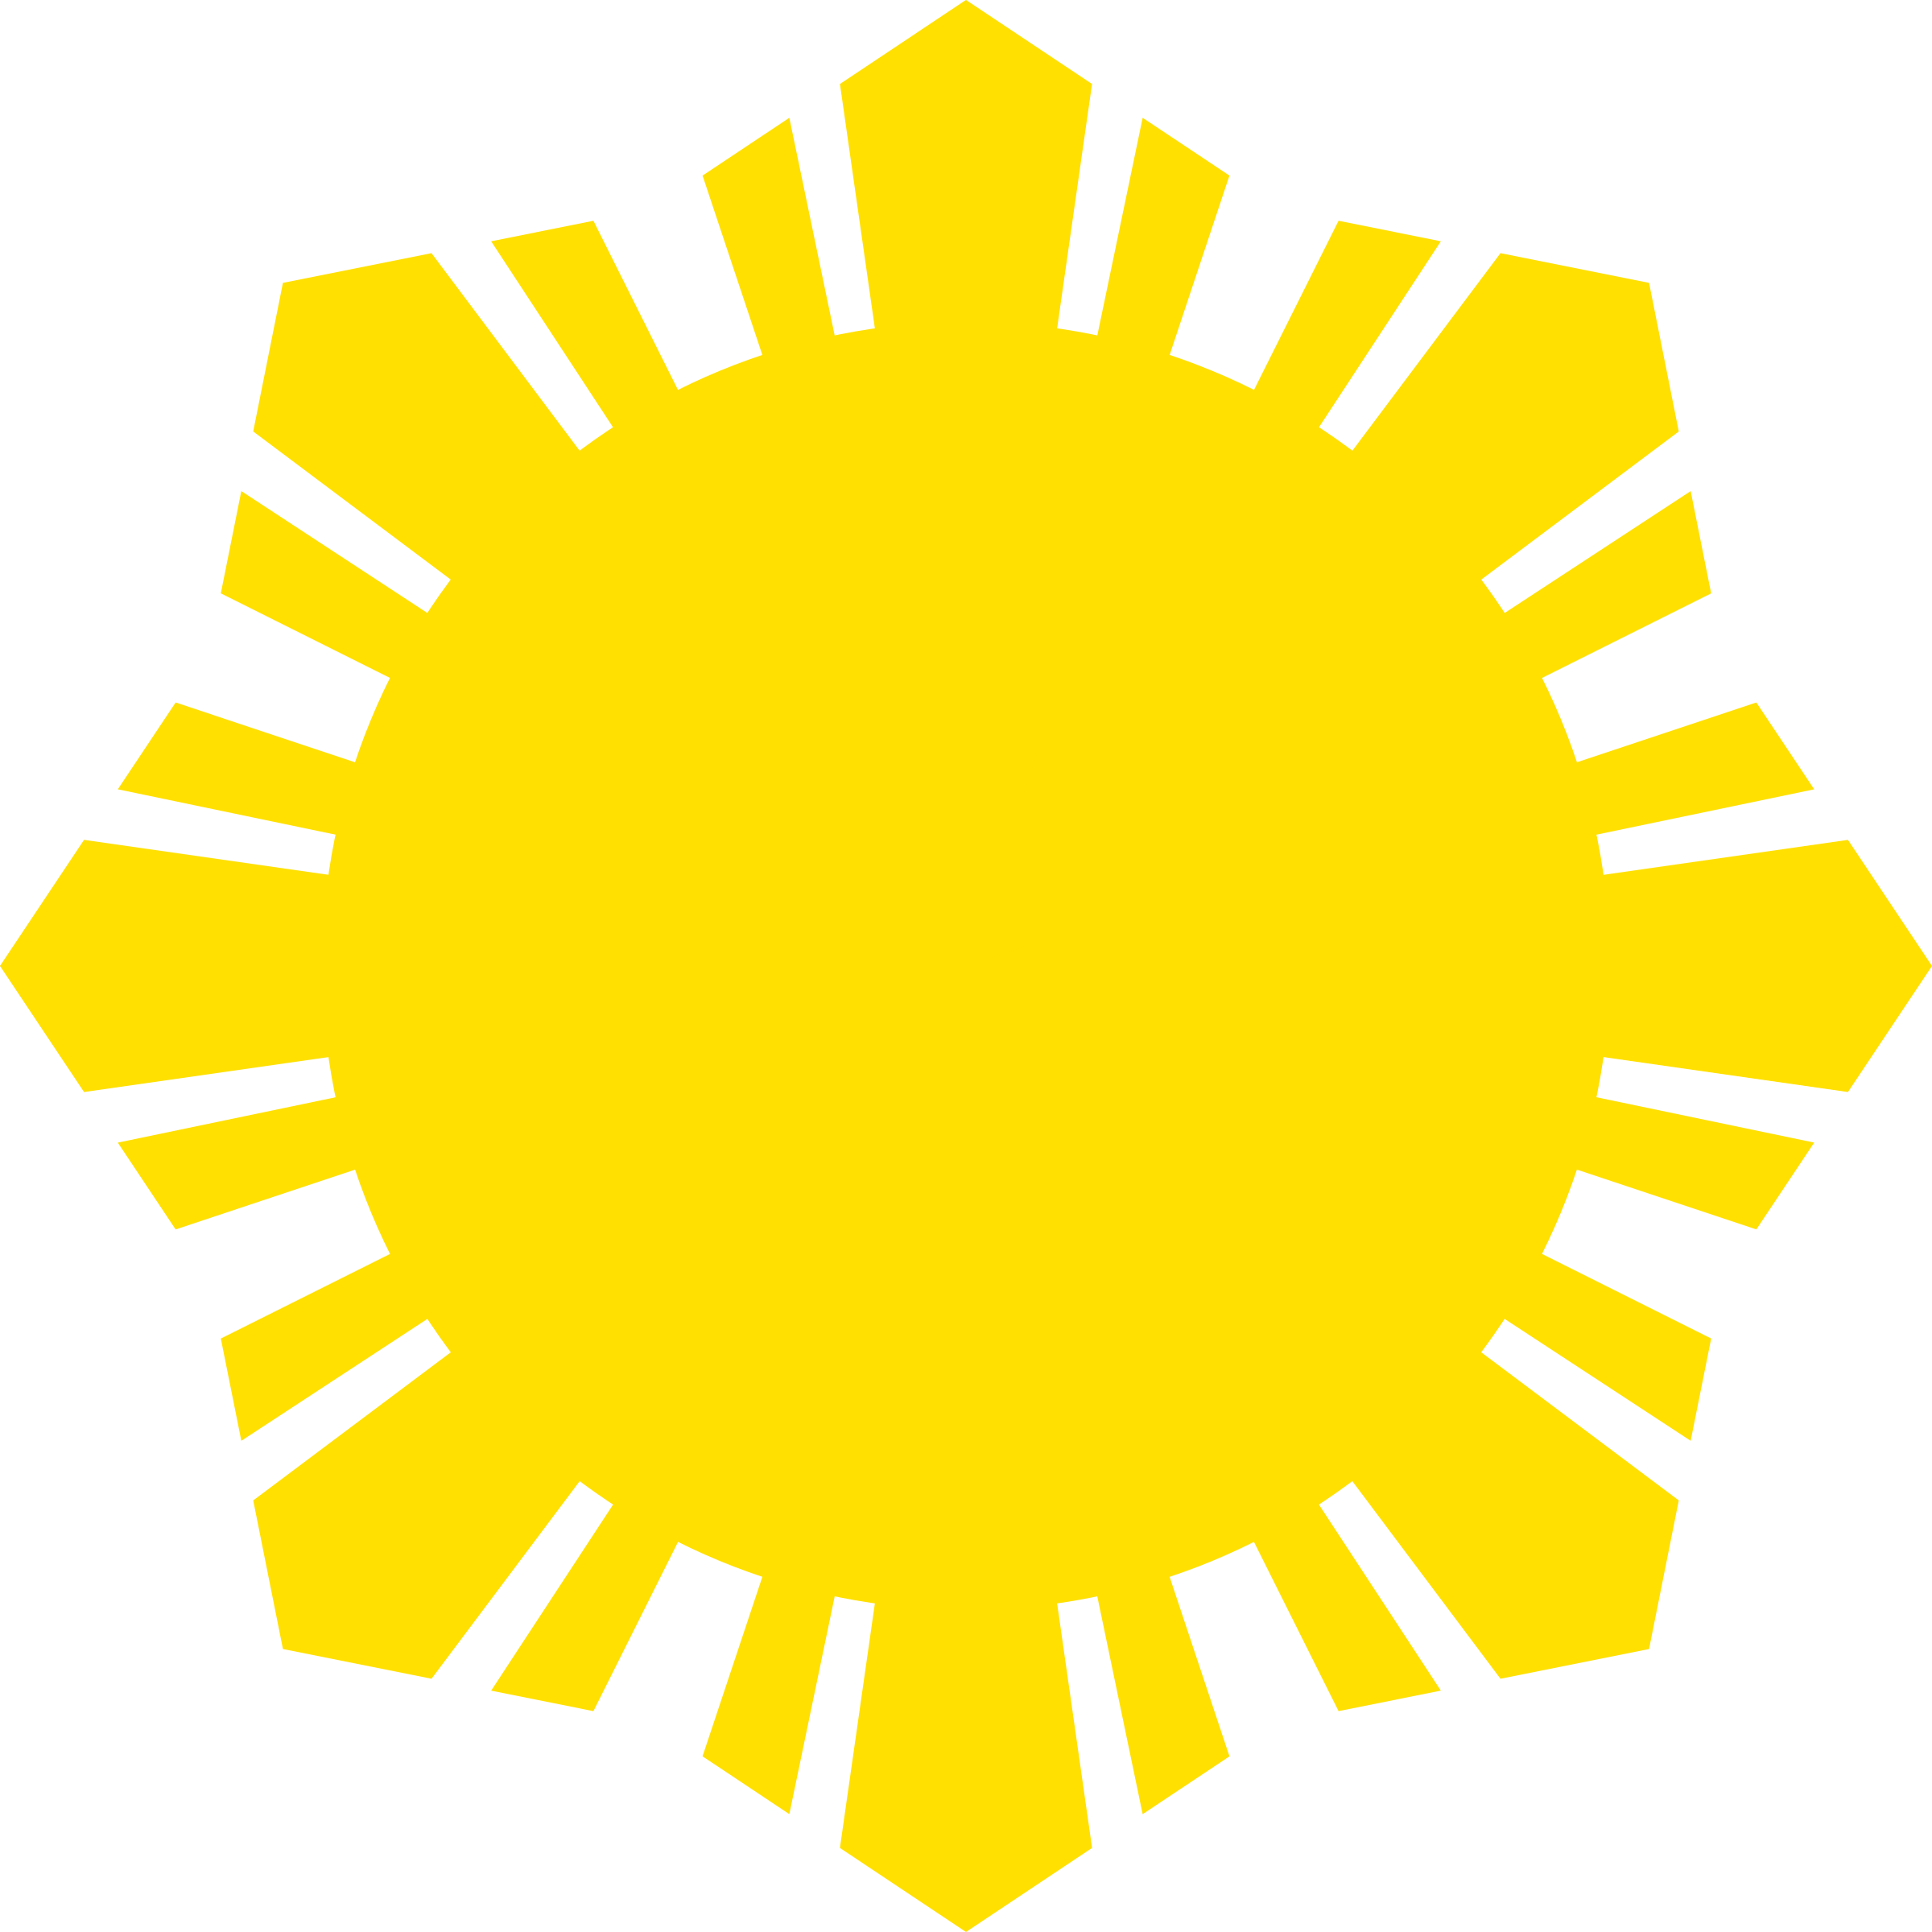 Sun Symbol Small Yellow by qubodup